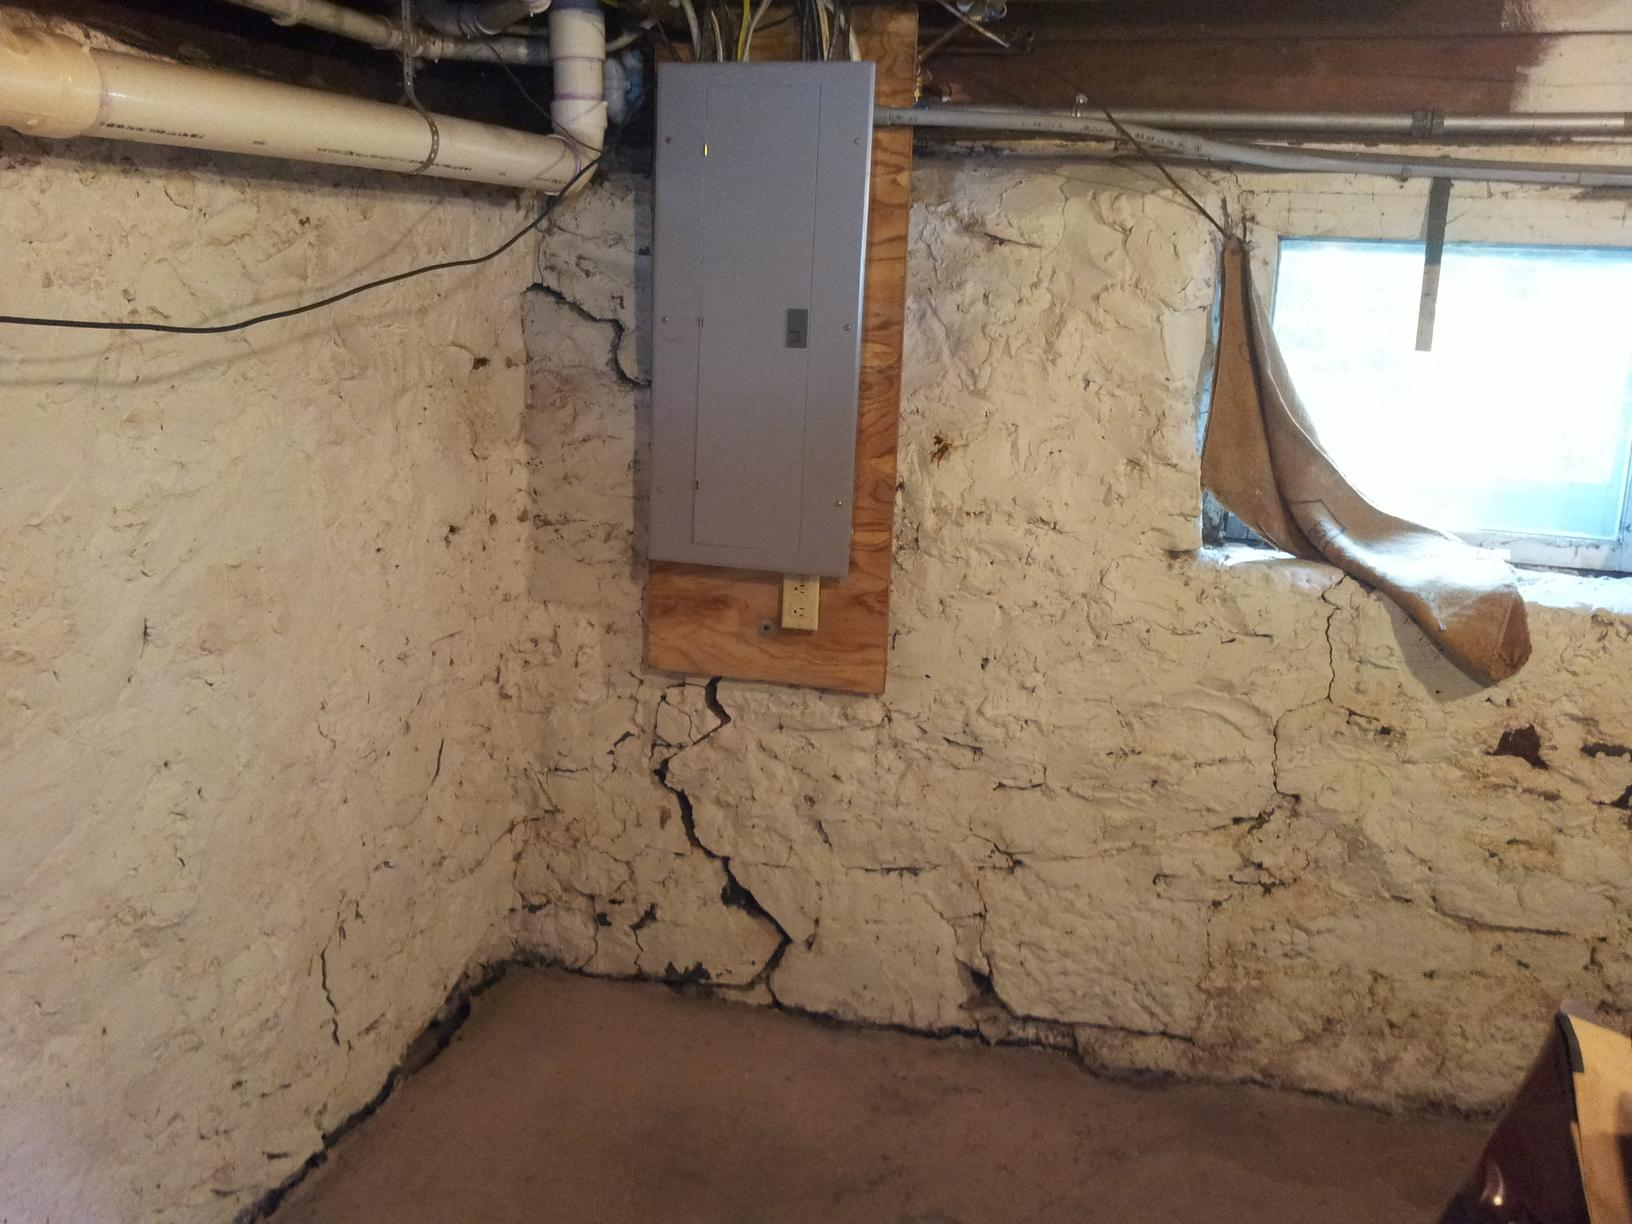 Basement walls Cracked, Leaking, or Ready to Collapse?